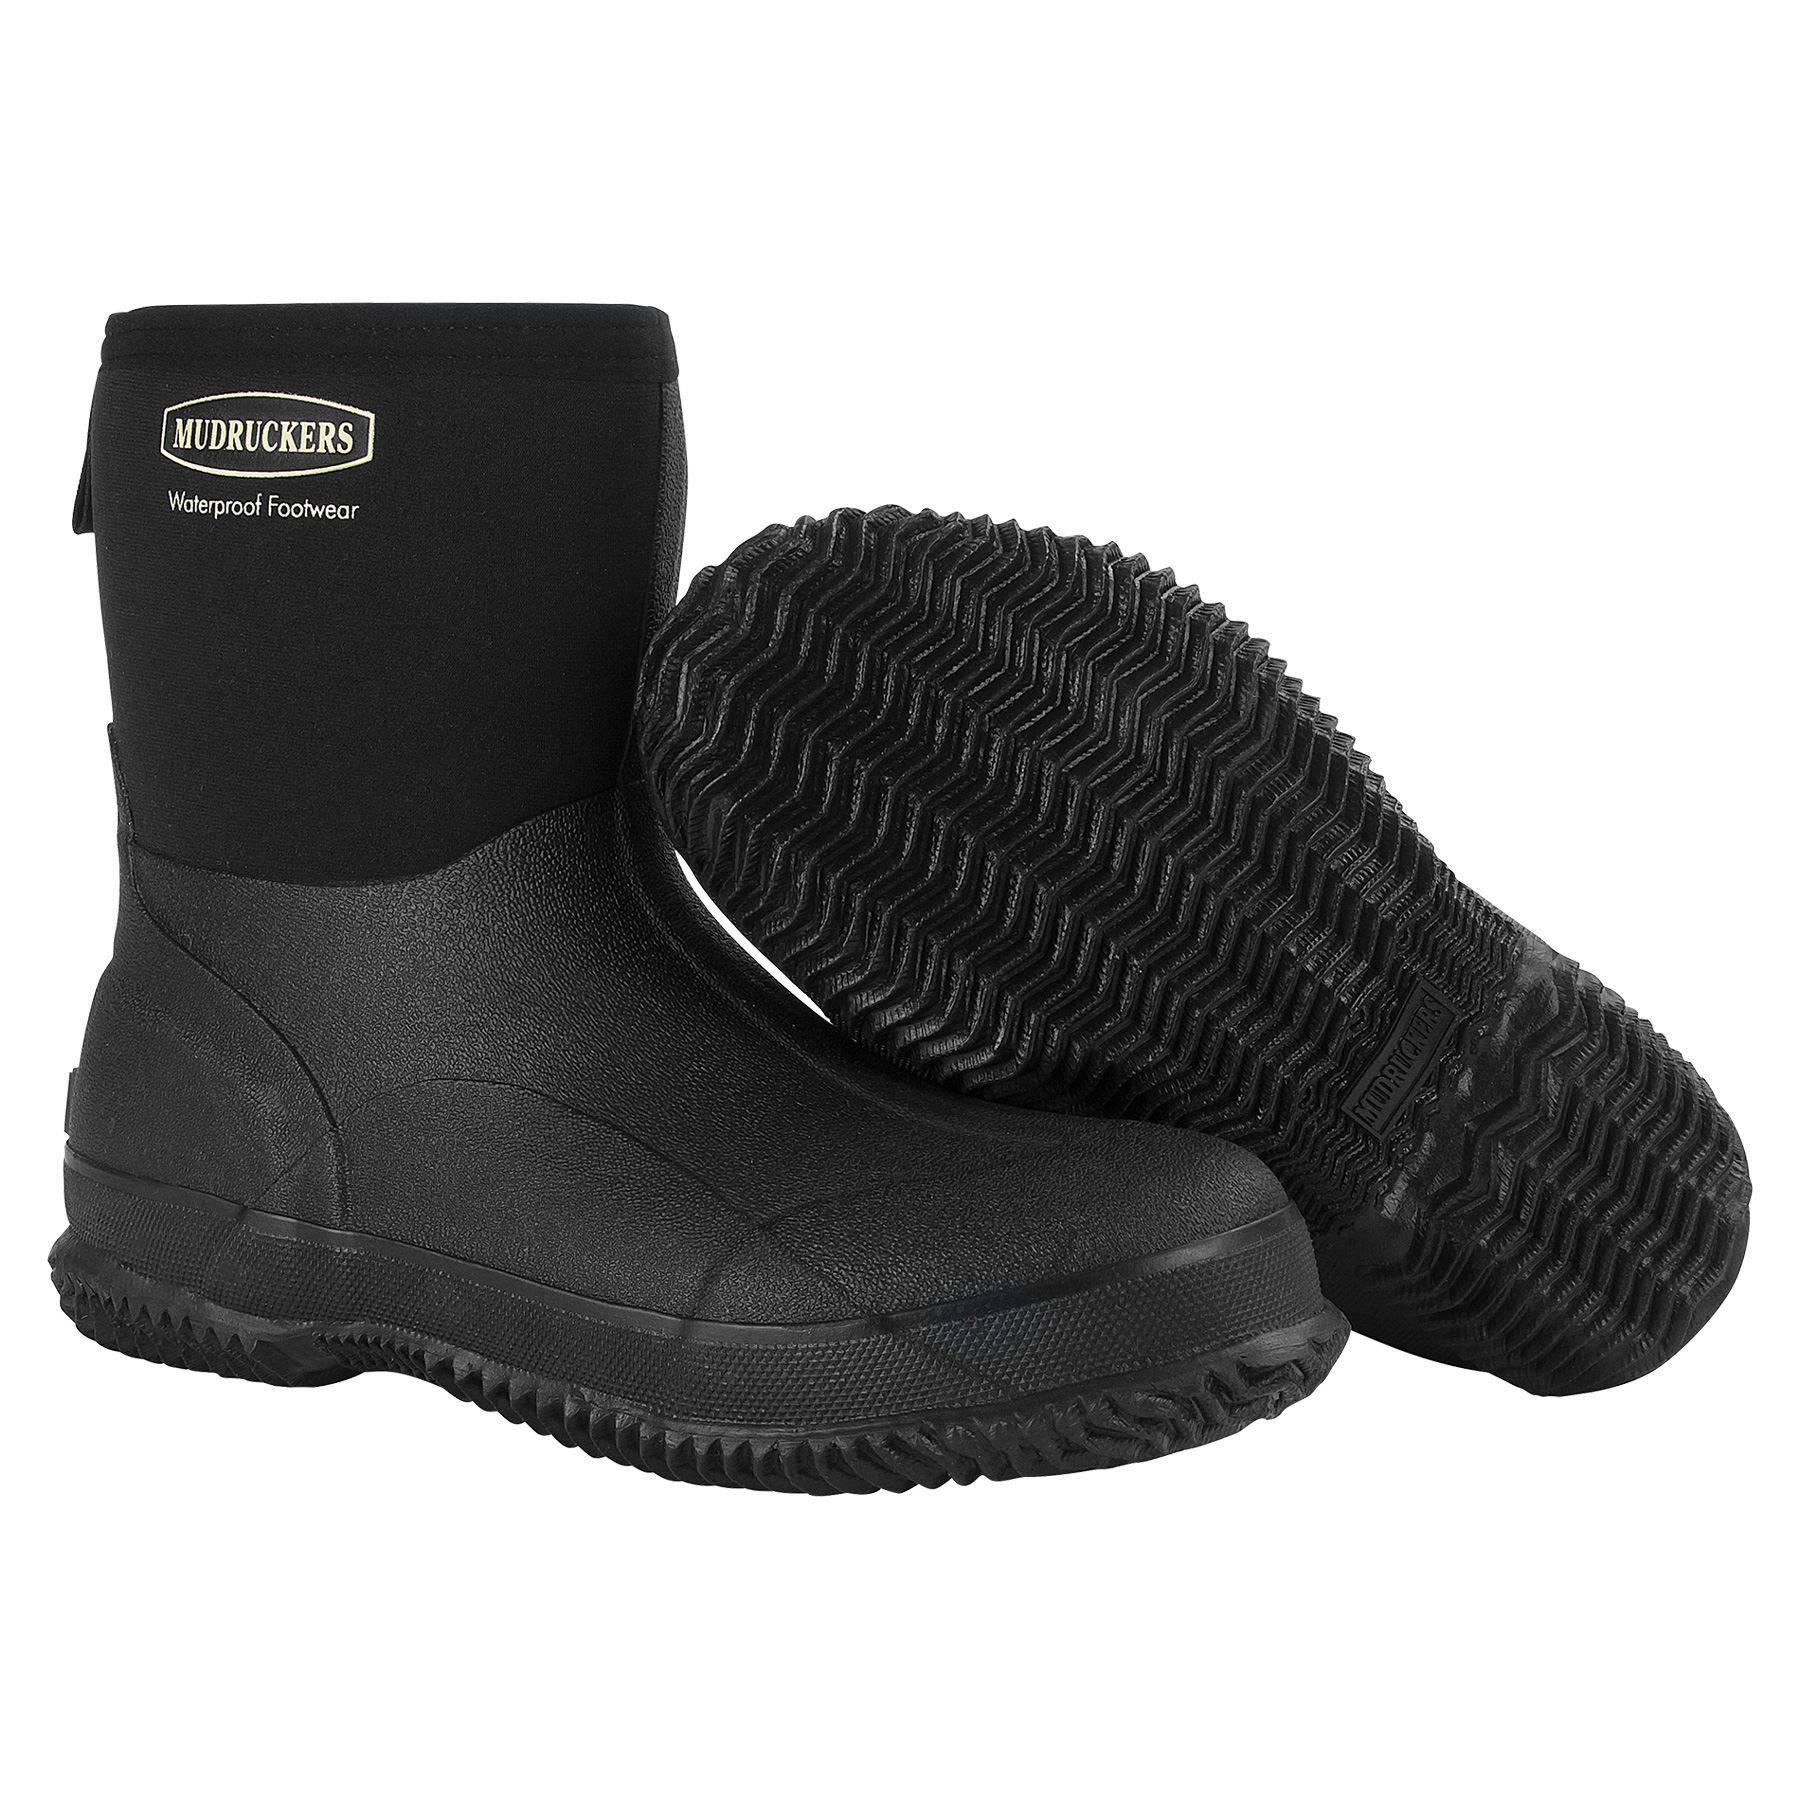 mudrucker mid boot in best selling stable boots at